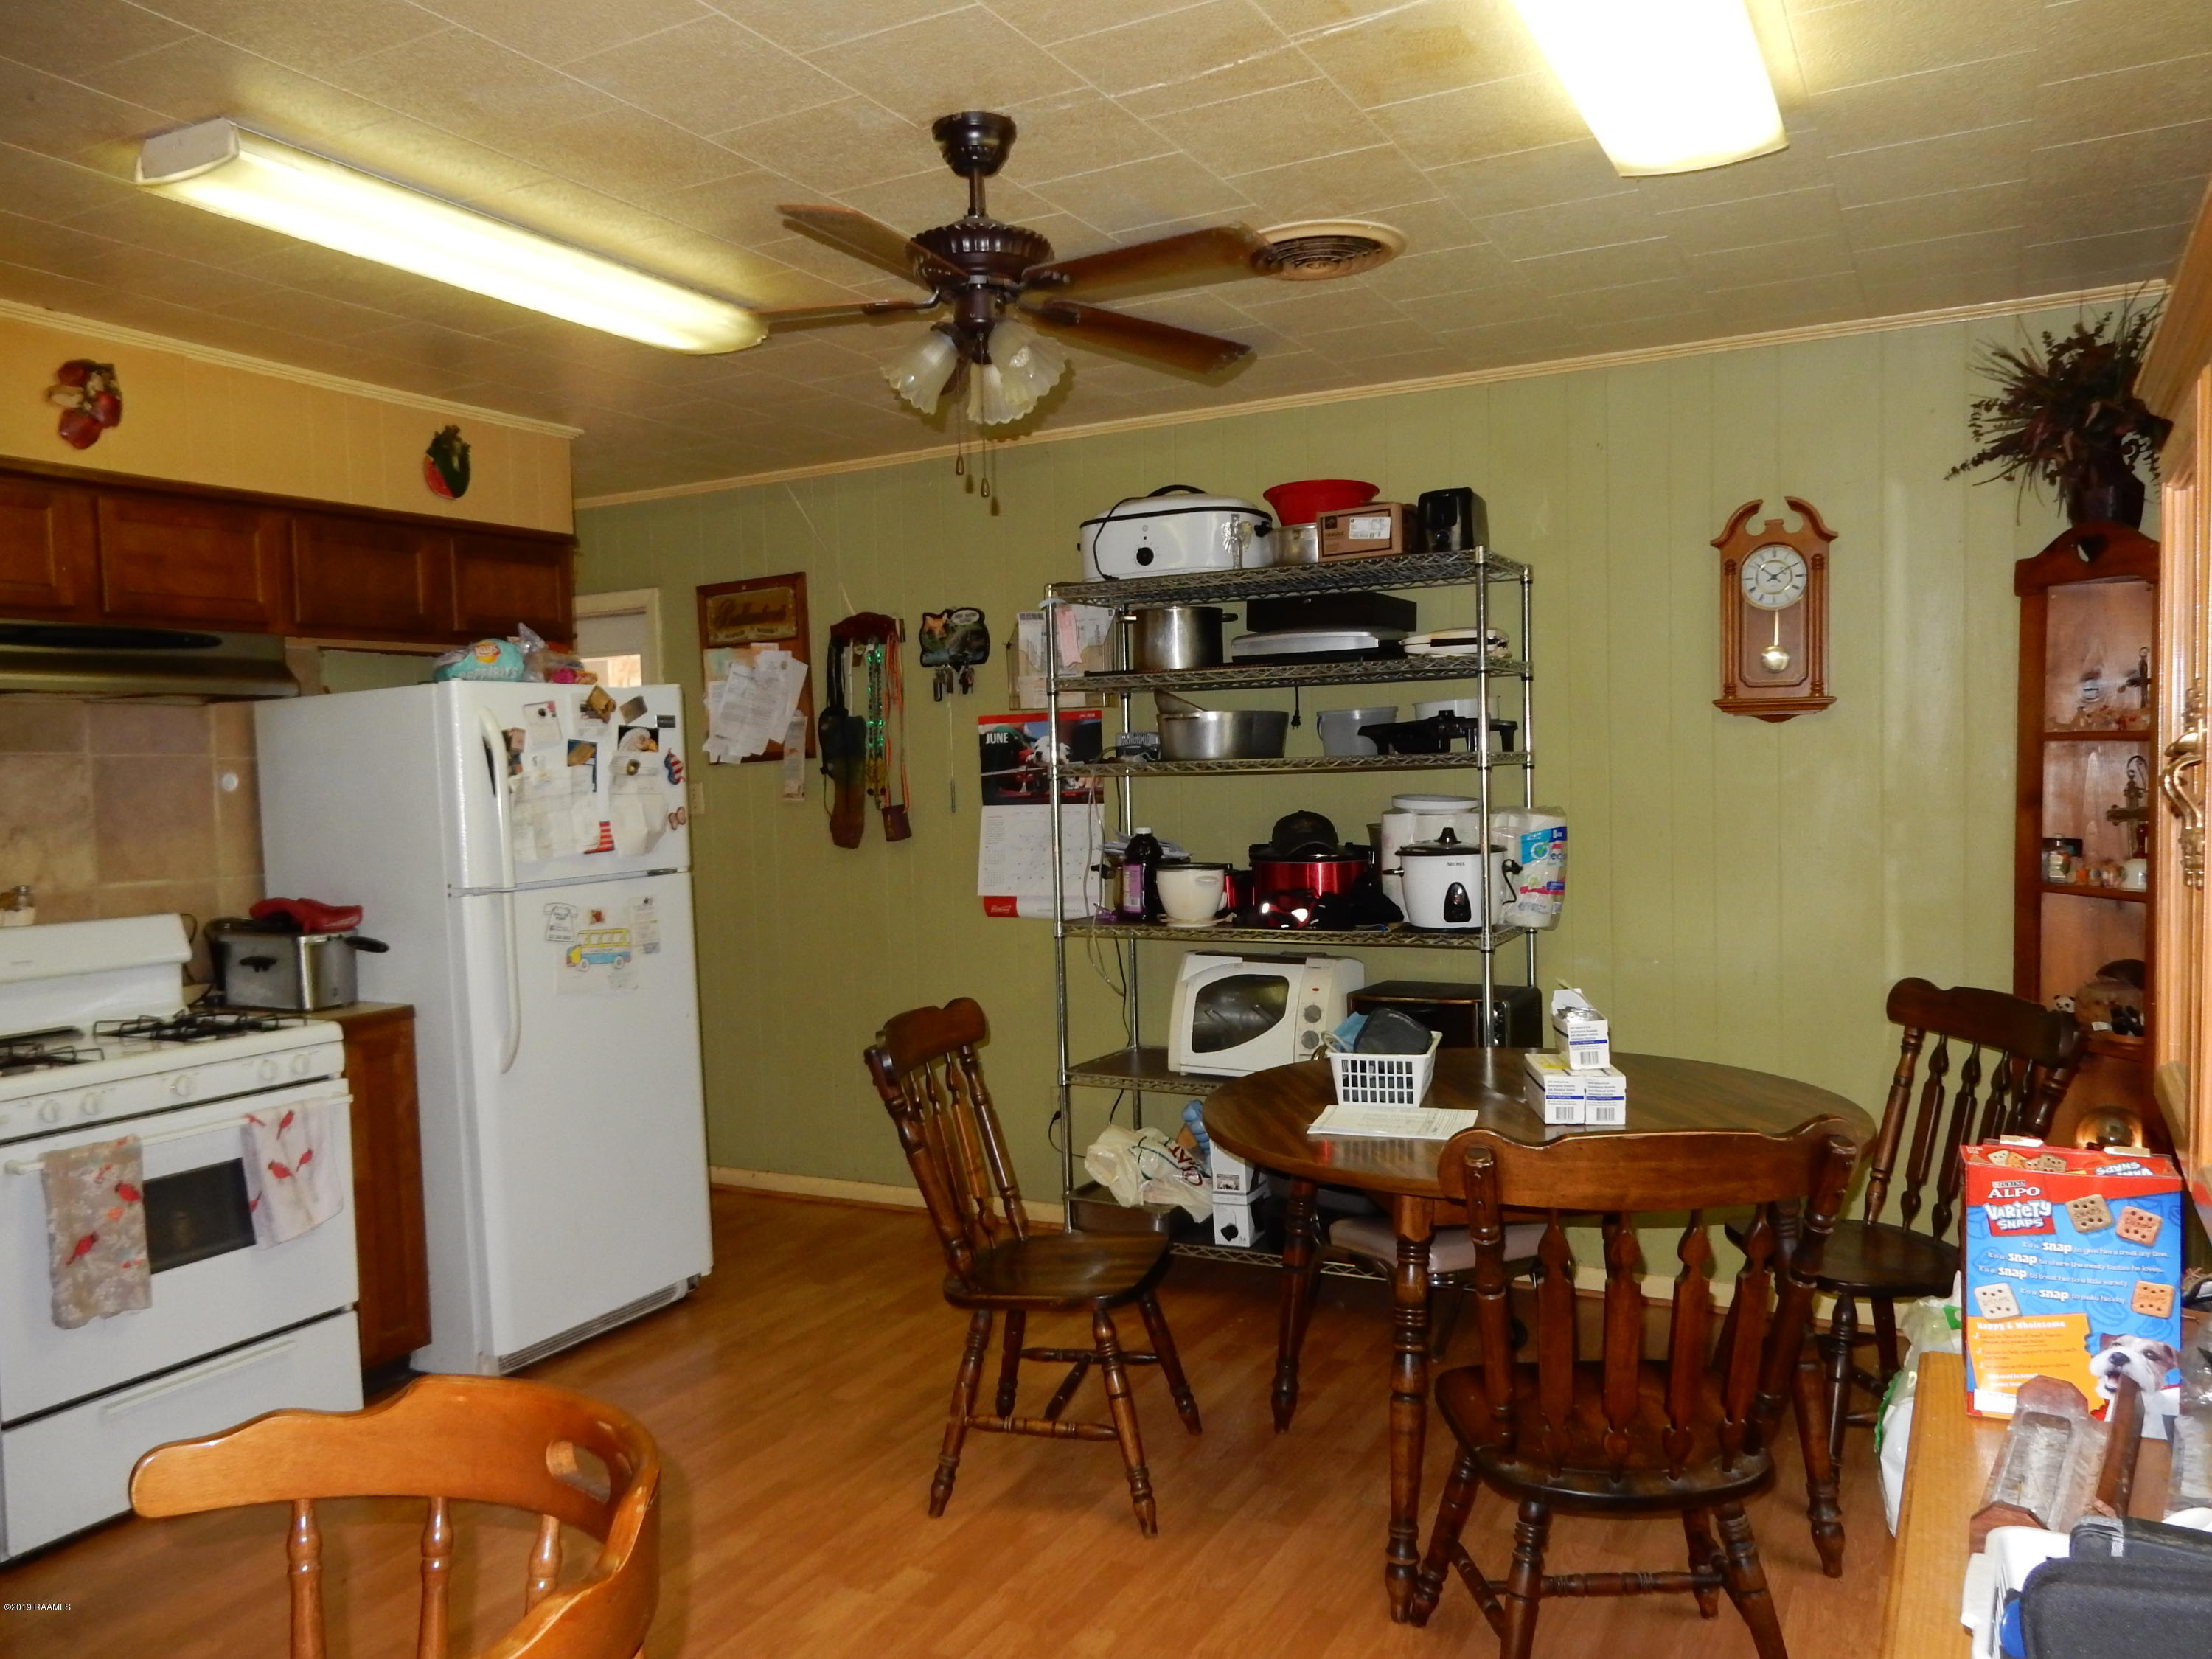 2000 Dudley Street W, Eunice, LA 70535 Photo #6